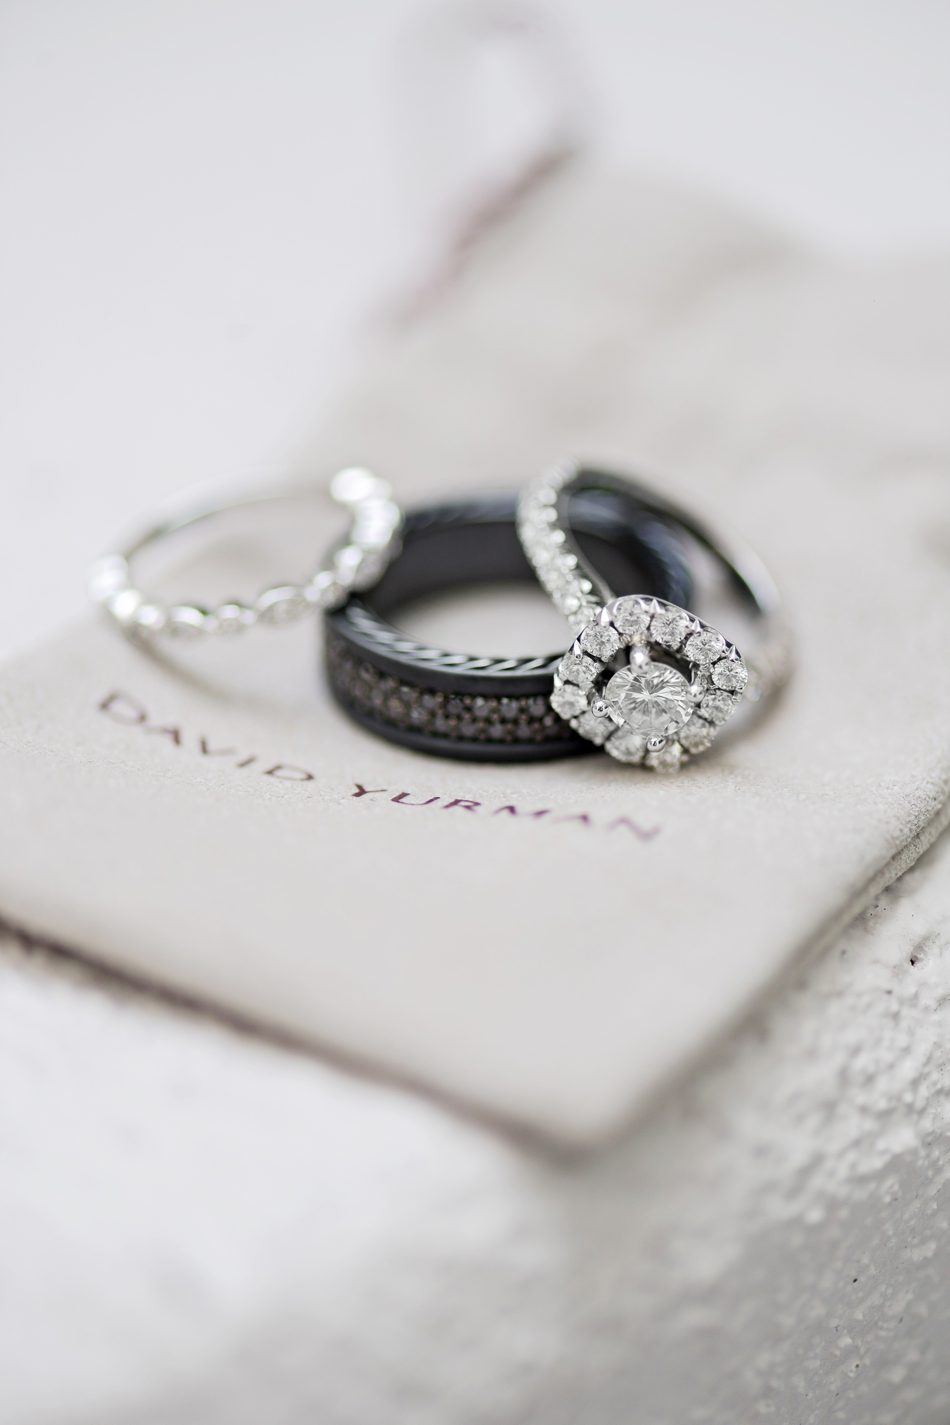 David Yurman wedding ring